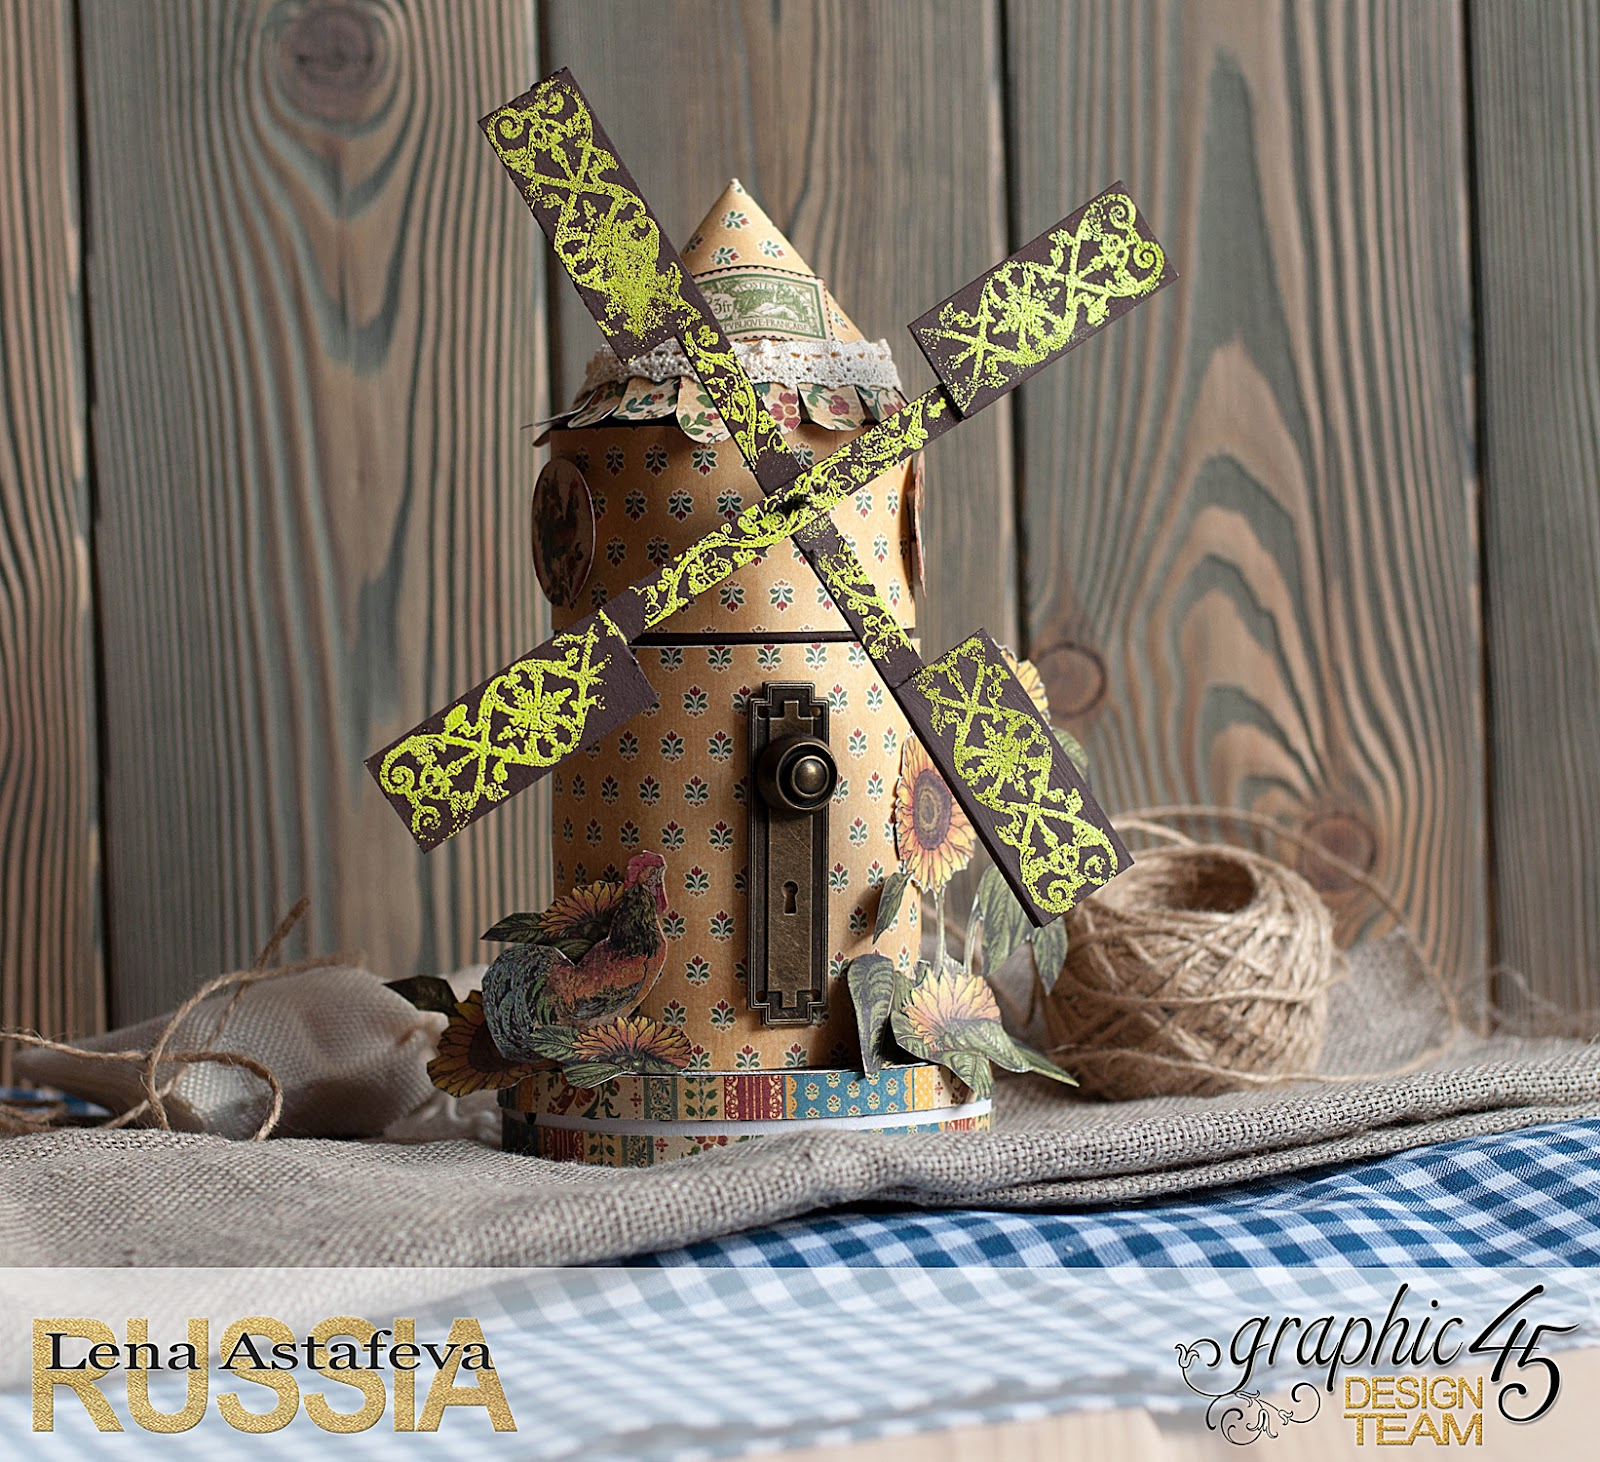 Mill-French Country-by tutorial Lena Astafeva-product Graphic 45-6.jpg